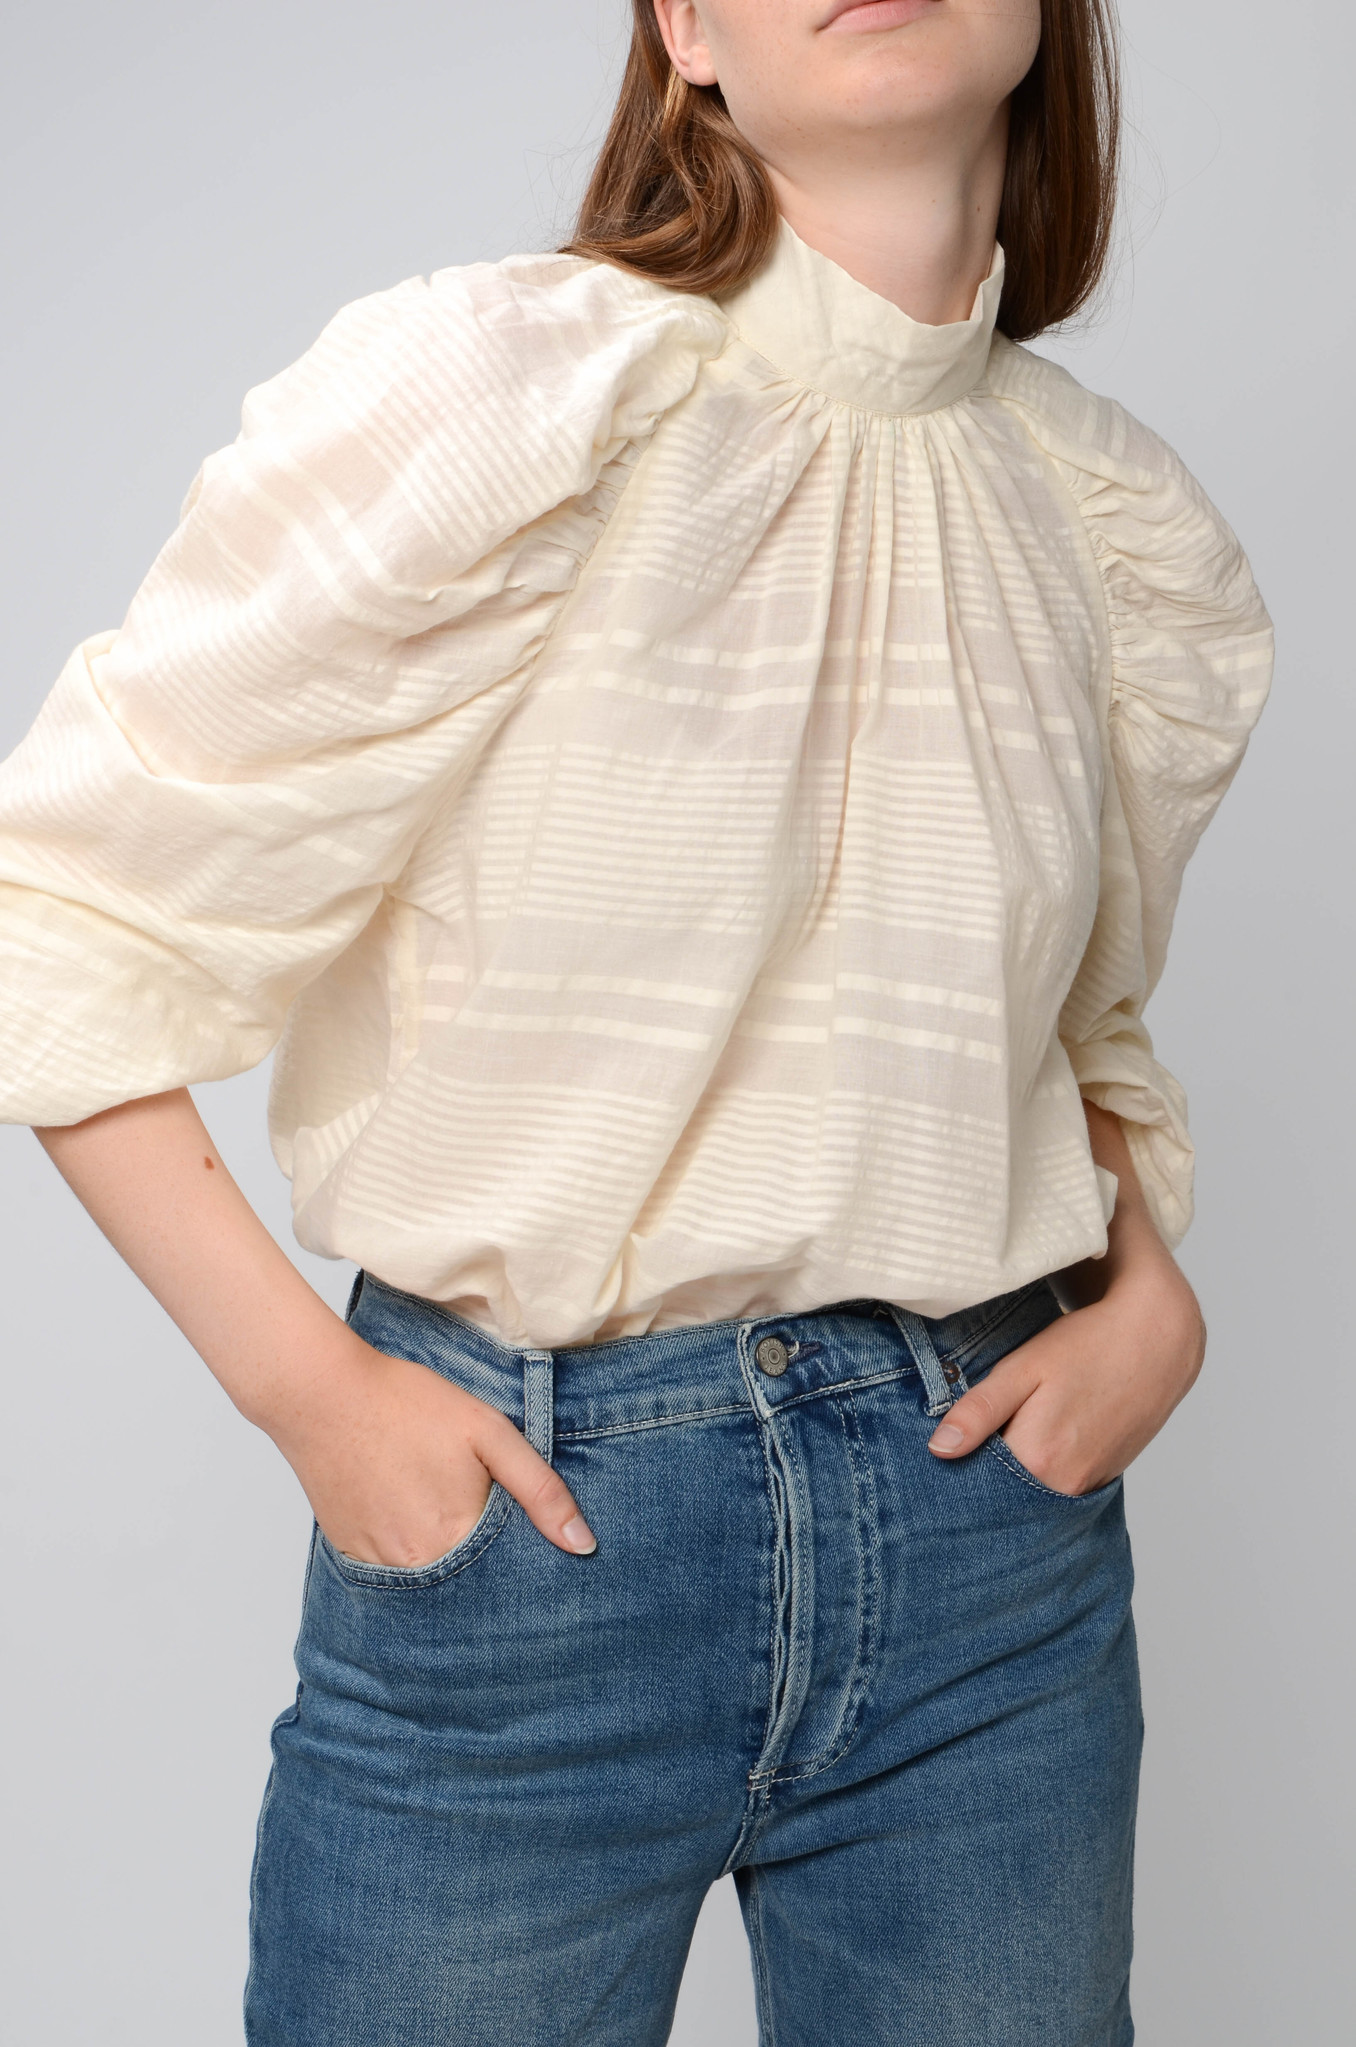 ASTA BLOUSE IN OFF WHITE-5